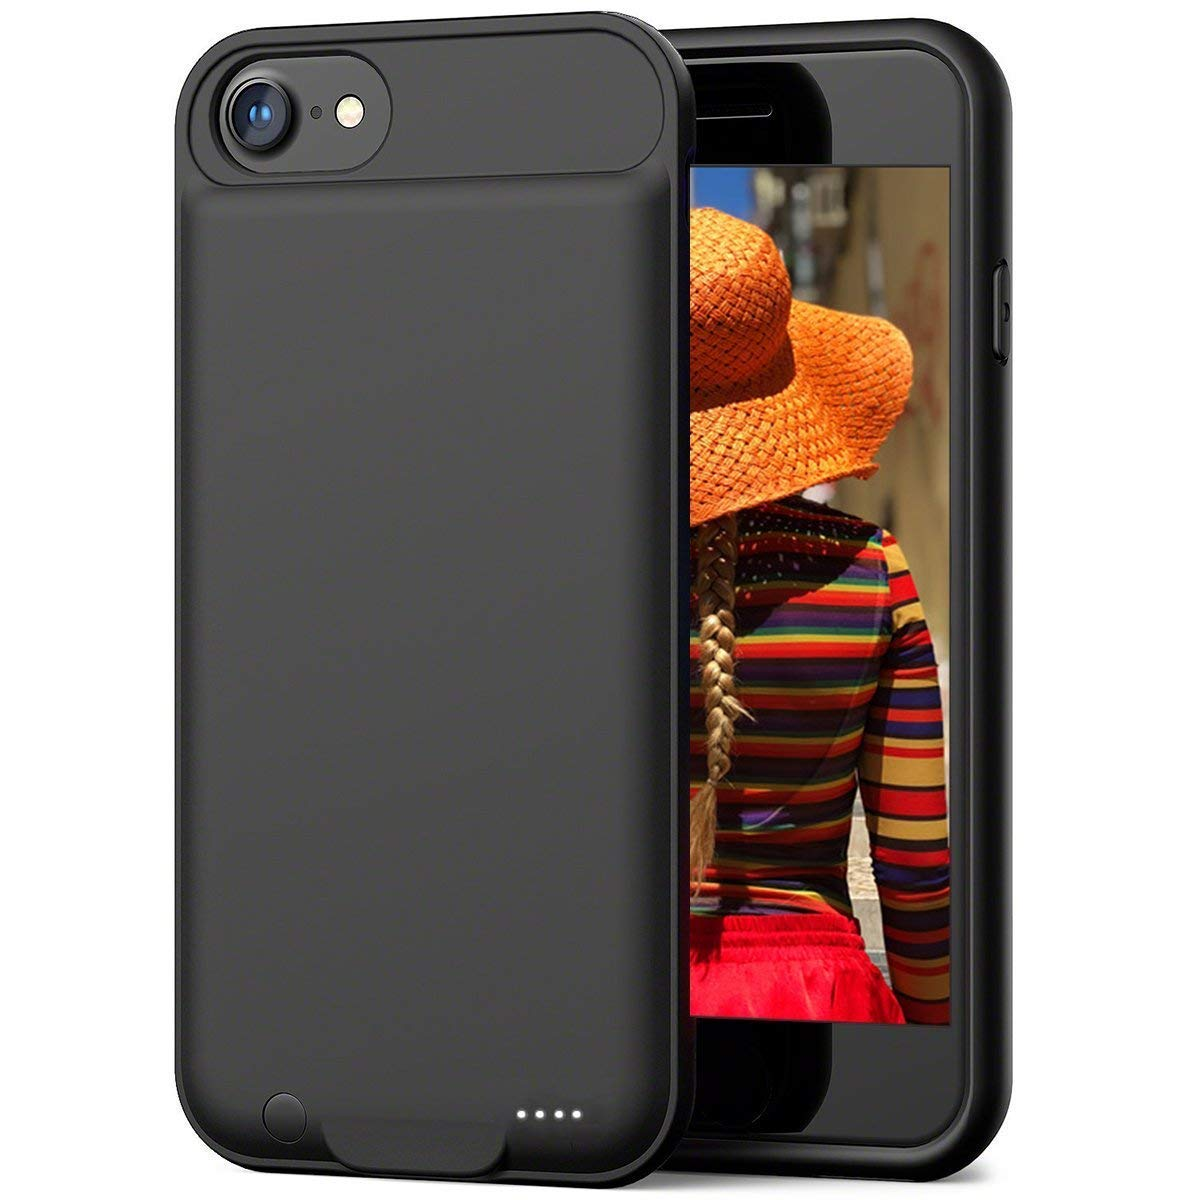 ZANYA Battery Case for iPhone 7, 3000mAH Rechargeable Case Protective Charging Battery Case Portable Charger Extended Battery for iPhone 7/8 Black (4.7 inch)